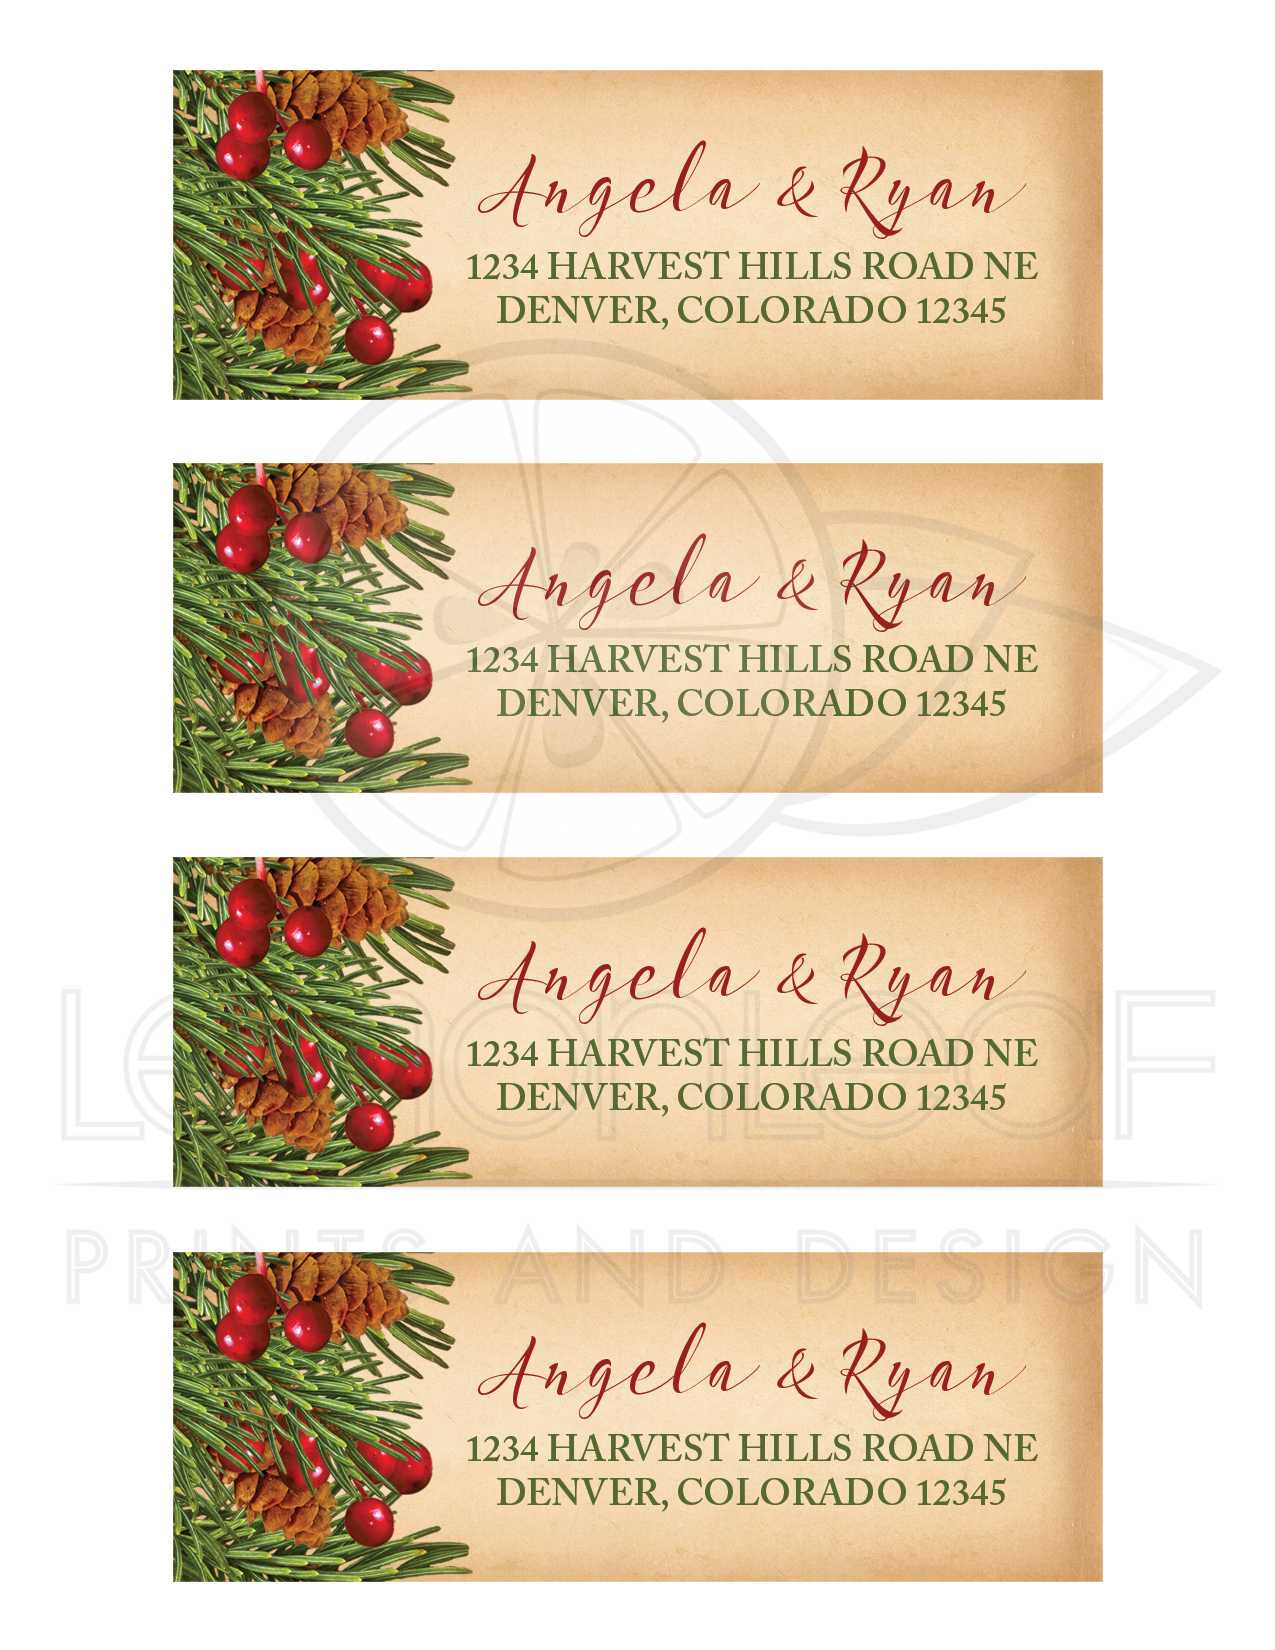 calligraphy address labels for wedding invitations wedding address labels christmas address labels wedding traditional vintage evergreen holly berries